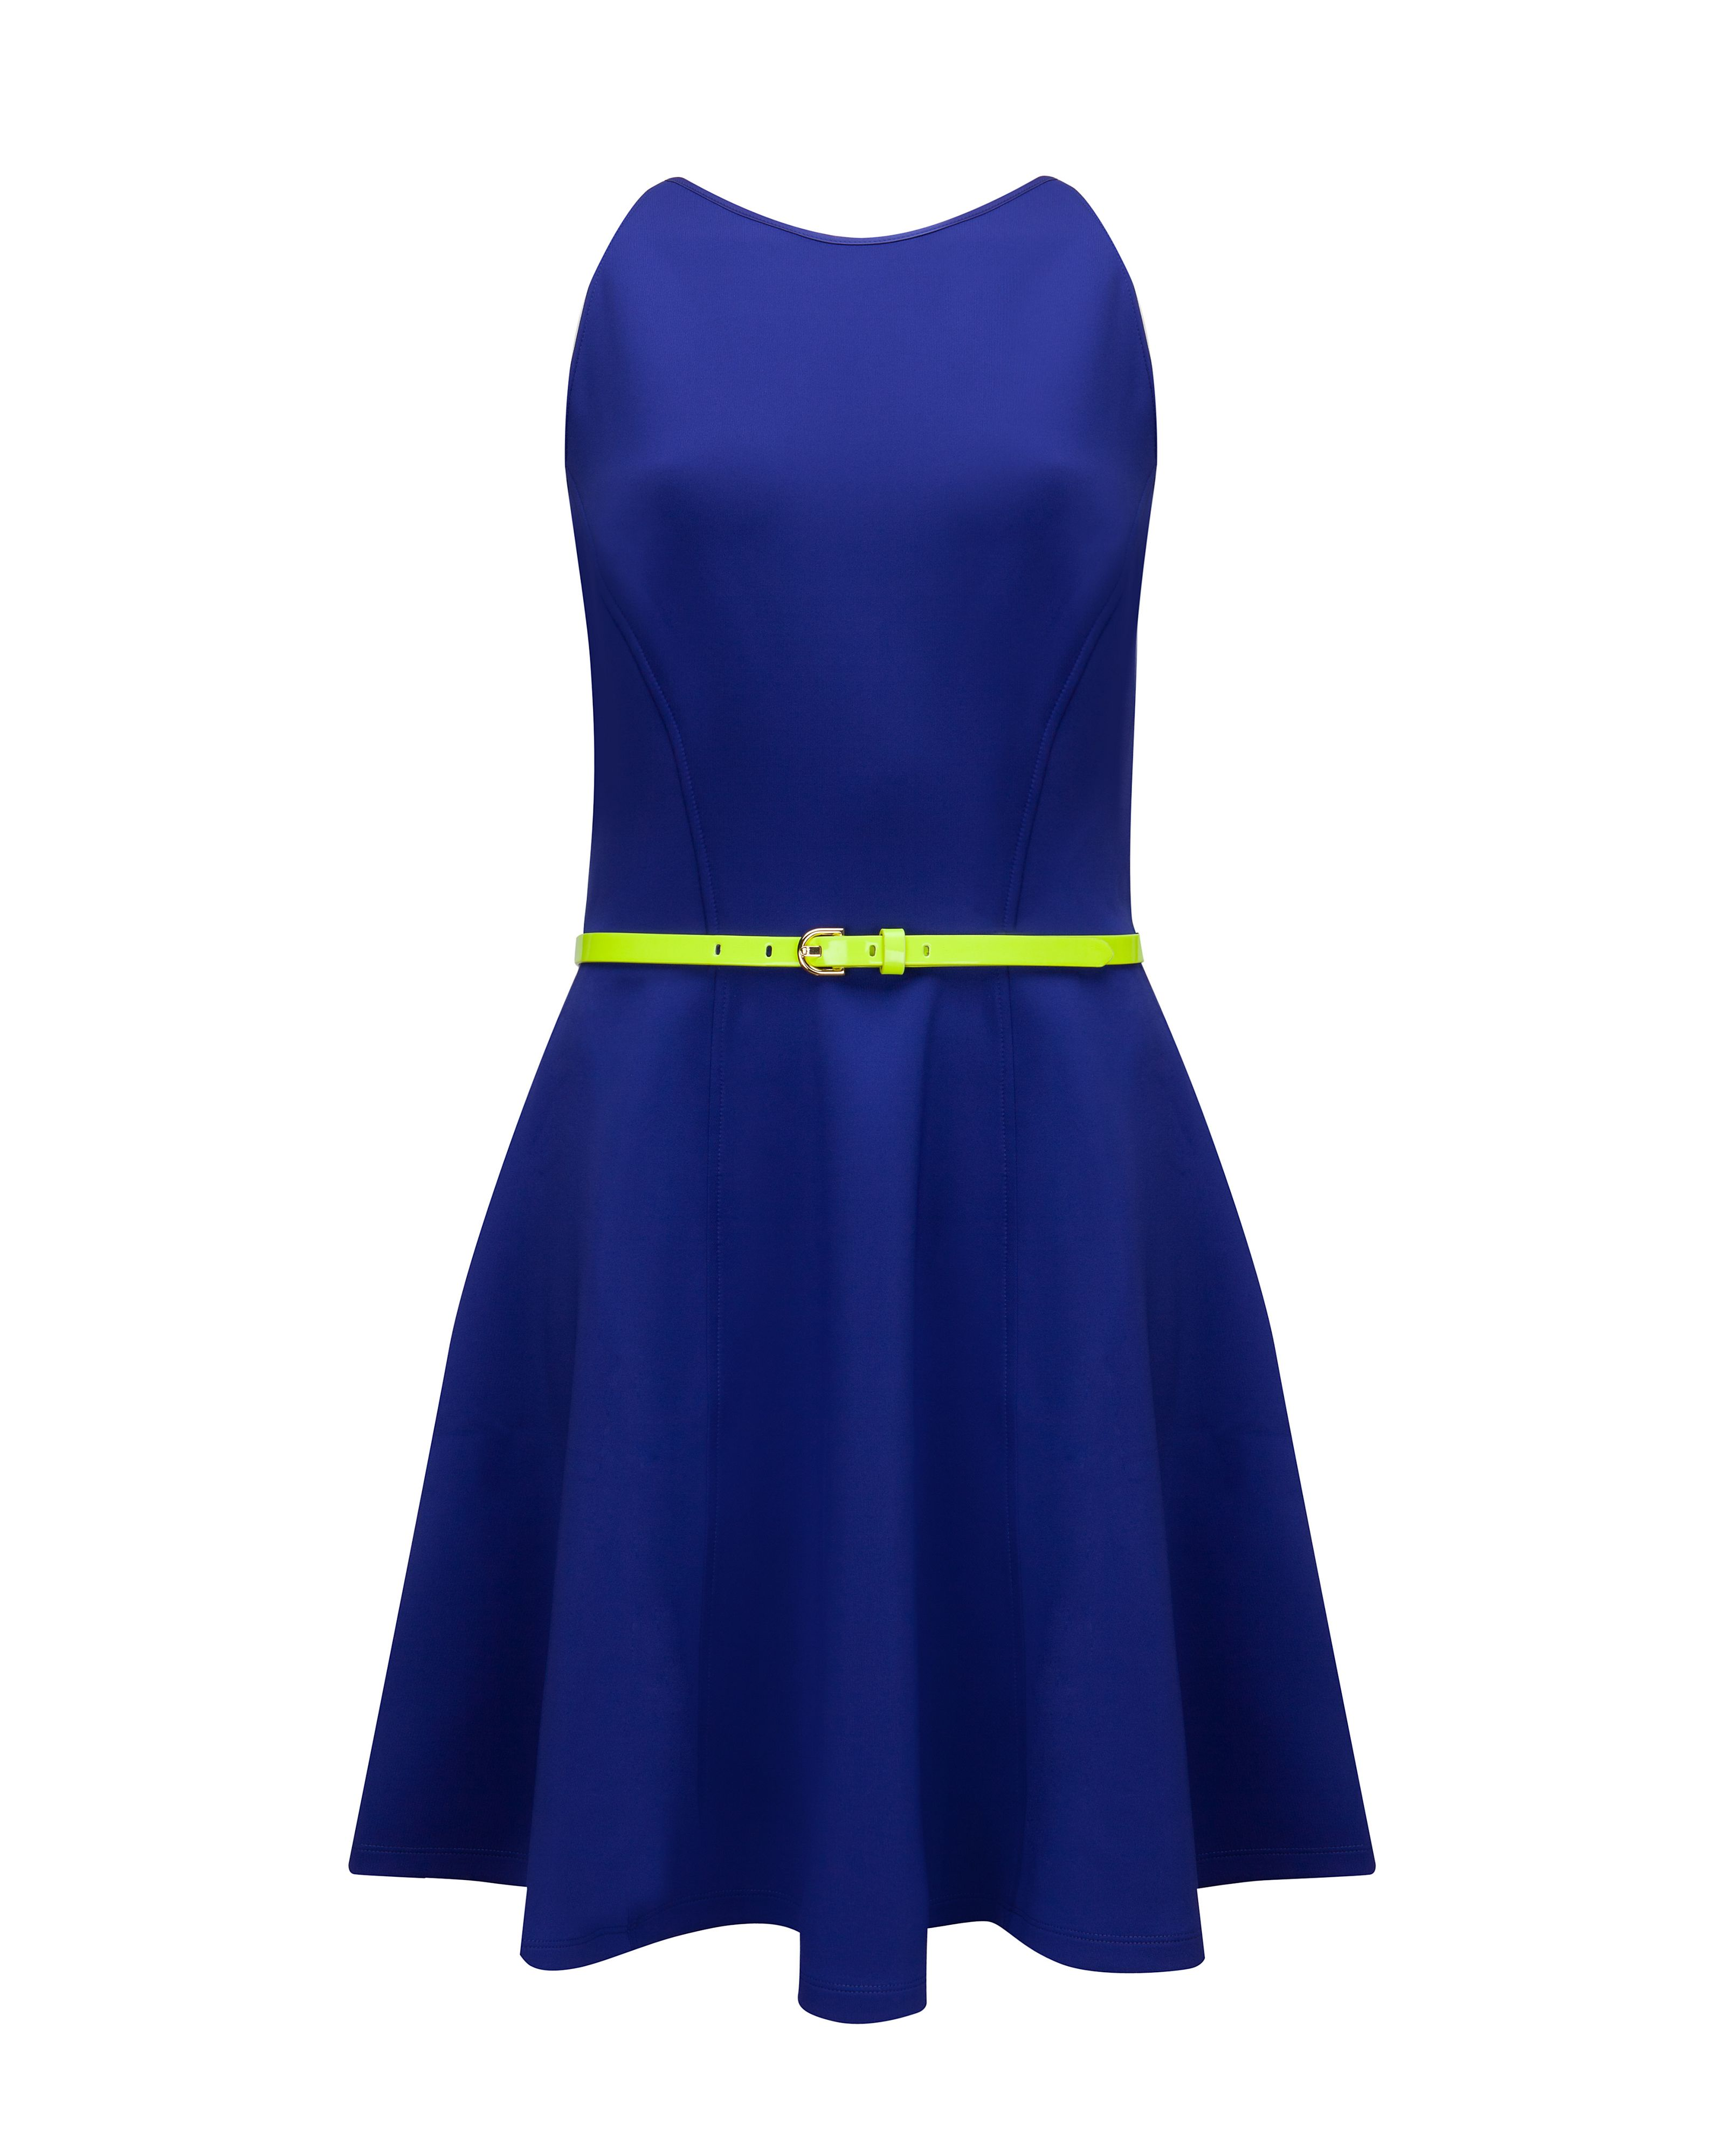 Preeny full skirted dress